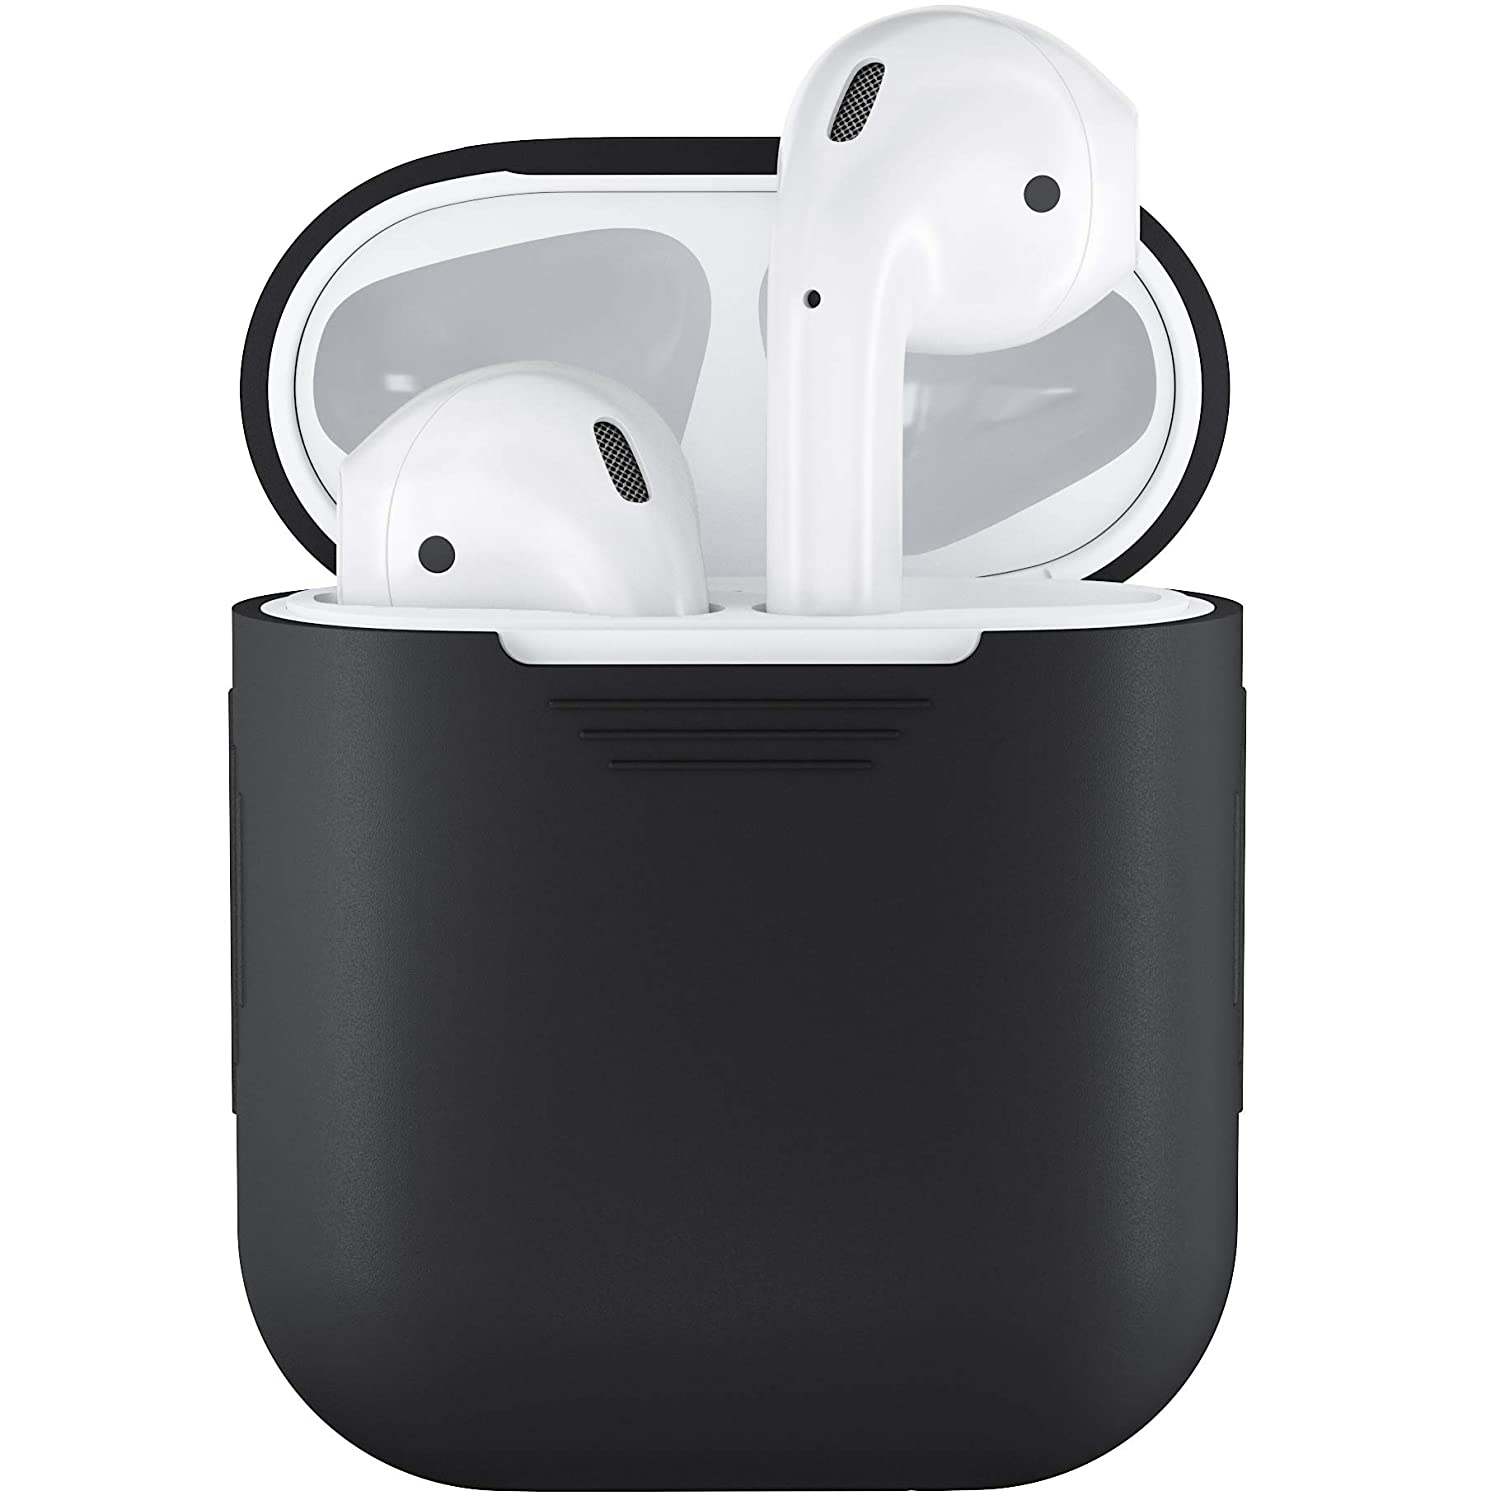 detailed look 727e3 477b0 PodSkinz AirPods Case Protective Silicone Cover and Skin Compatible with  Apple Airpods 1 & AirPods 2 [Front LED Not Visible] (Black)